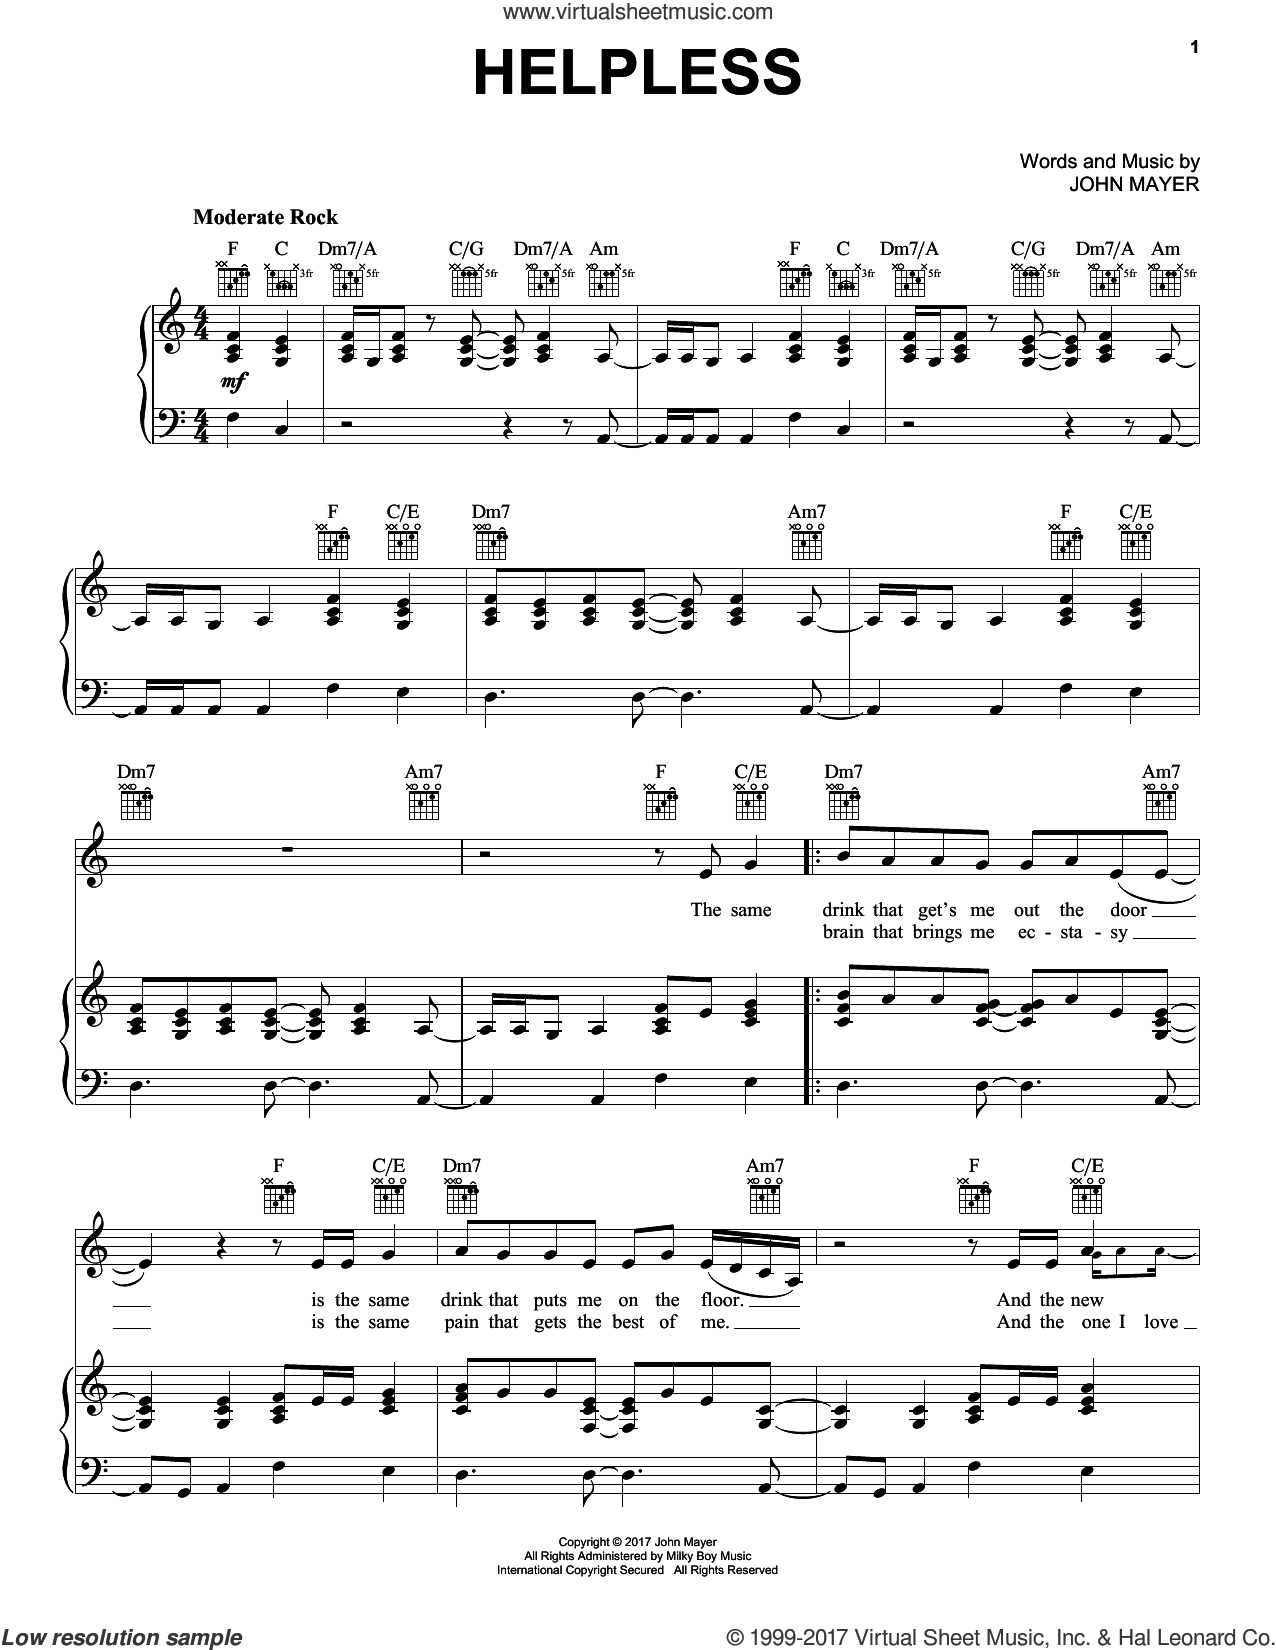 Helpless sheet music for voice, piano or guitar by John Mayer, intermediate skill level